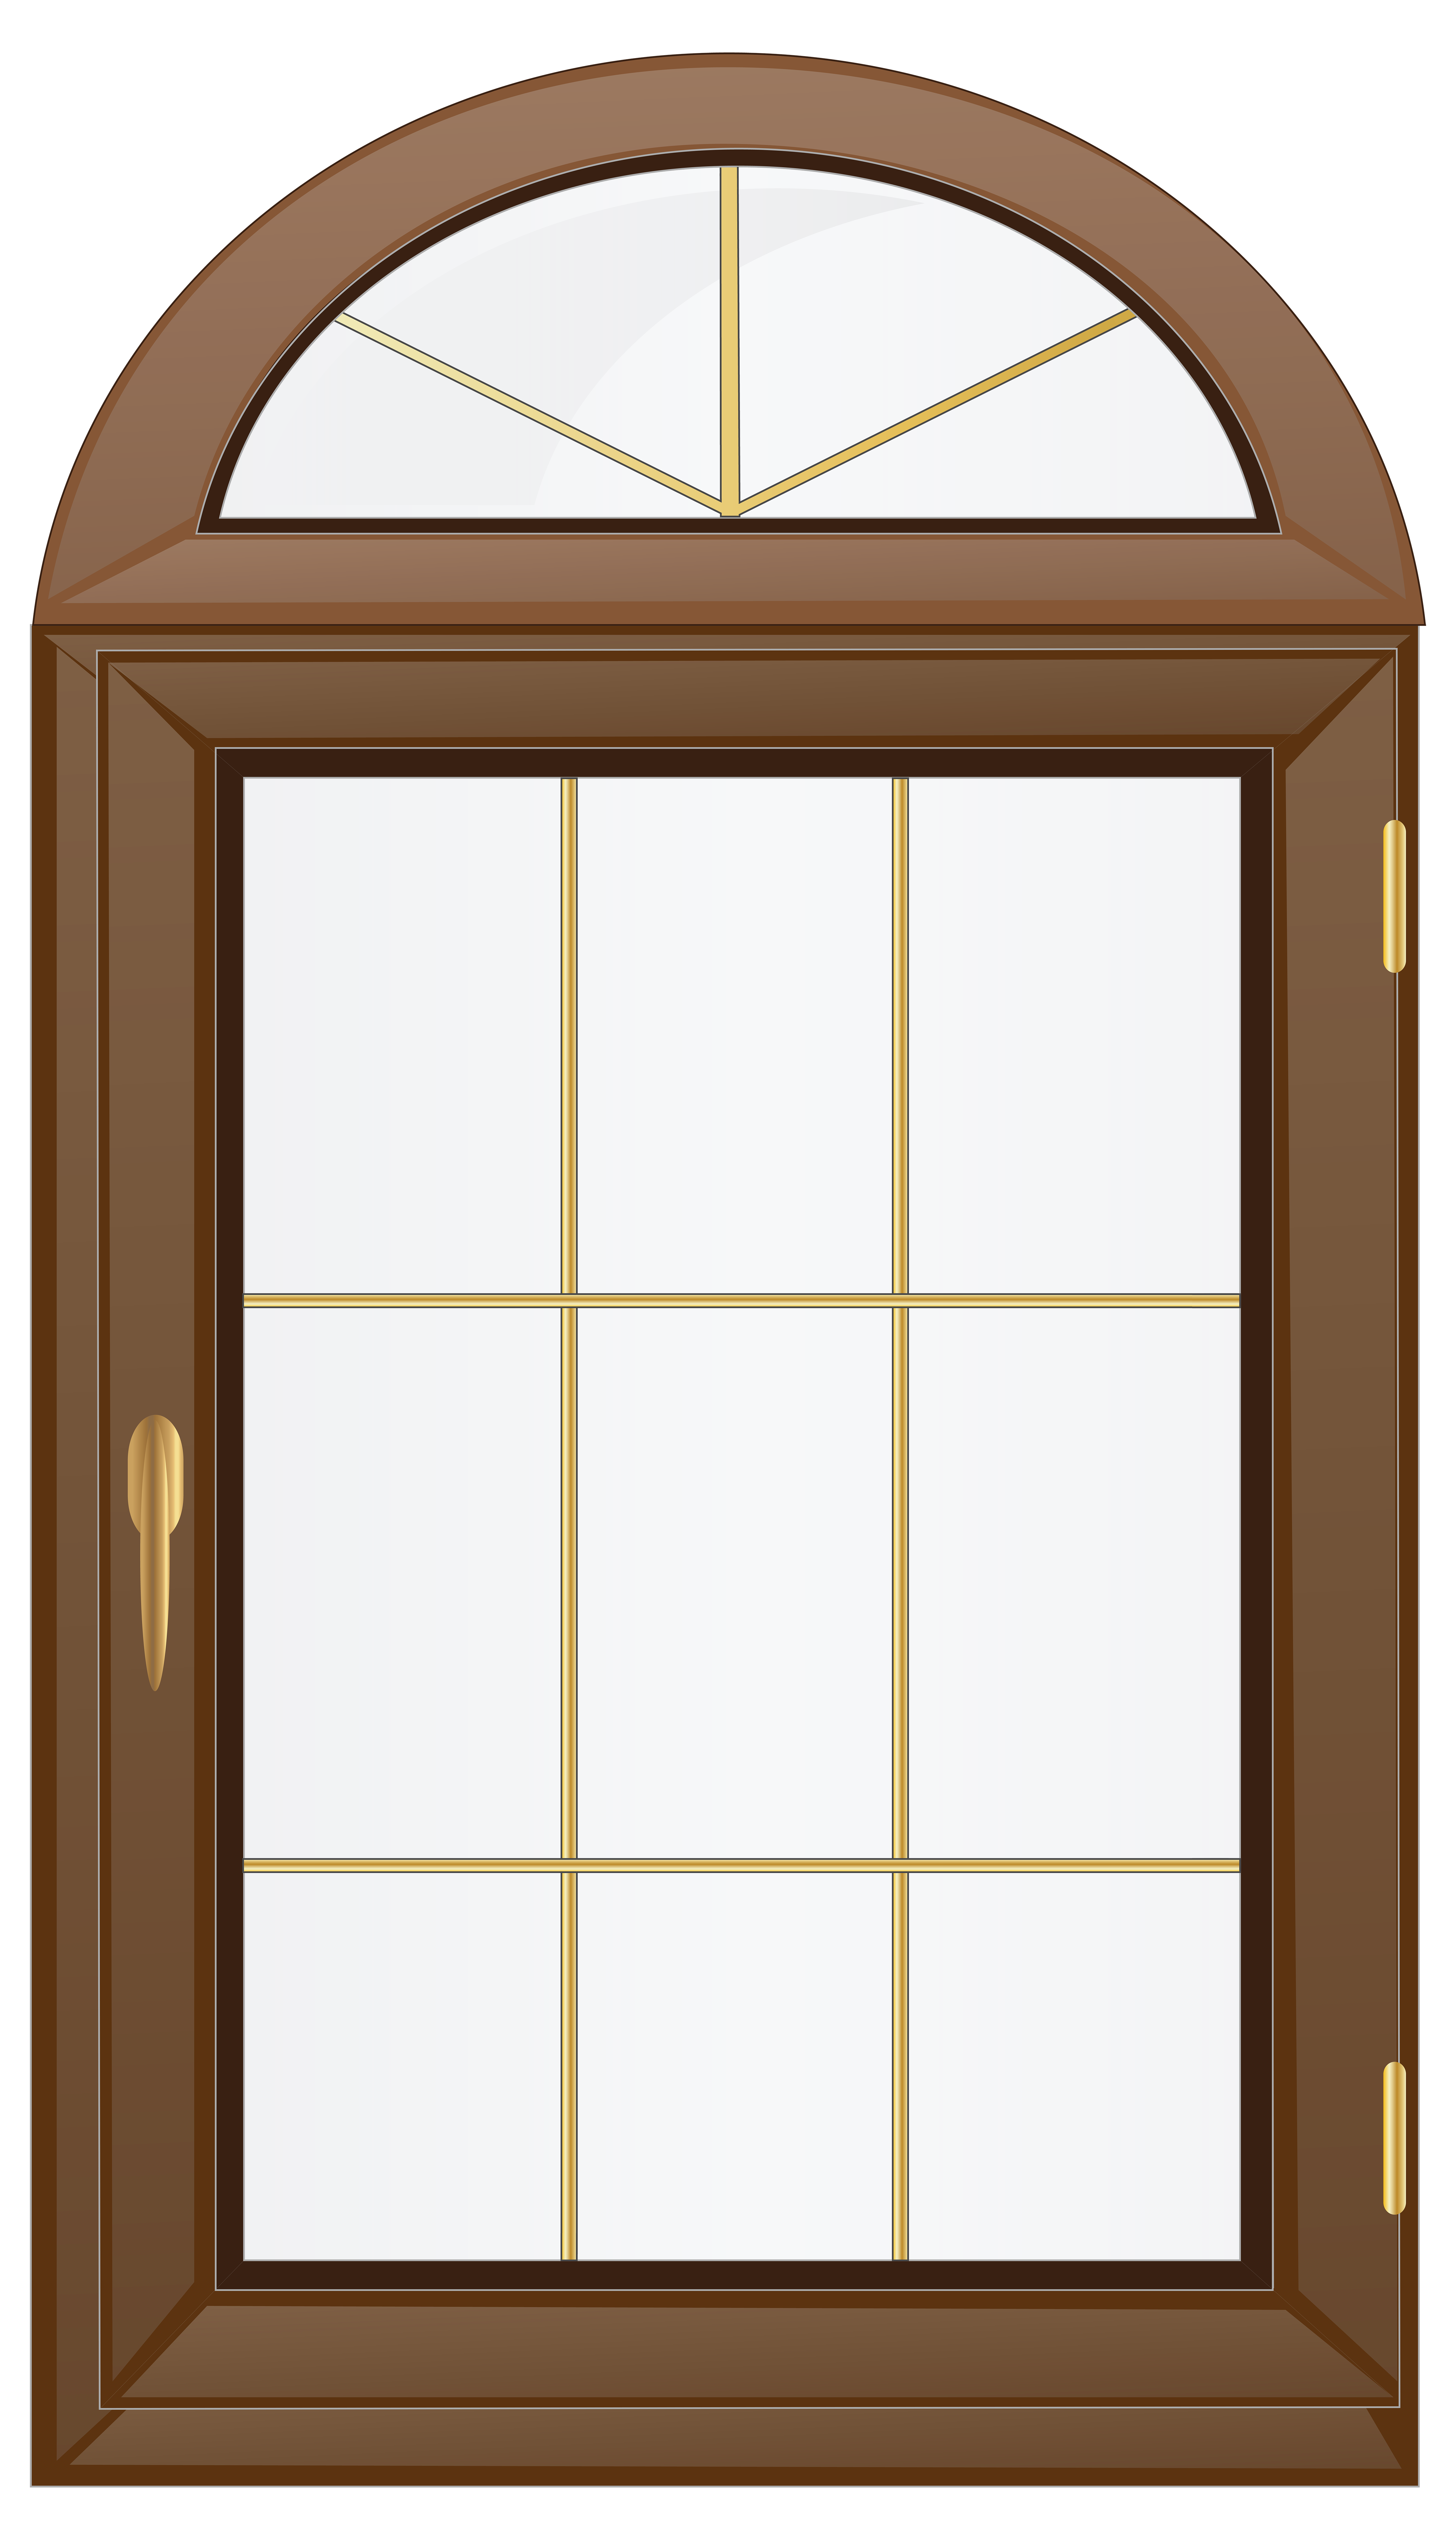 4587x8000 Mesmerizing Windows Clipart 8 Free Download Clip Art